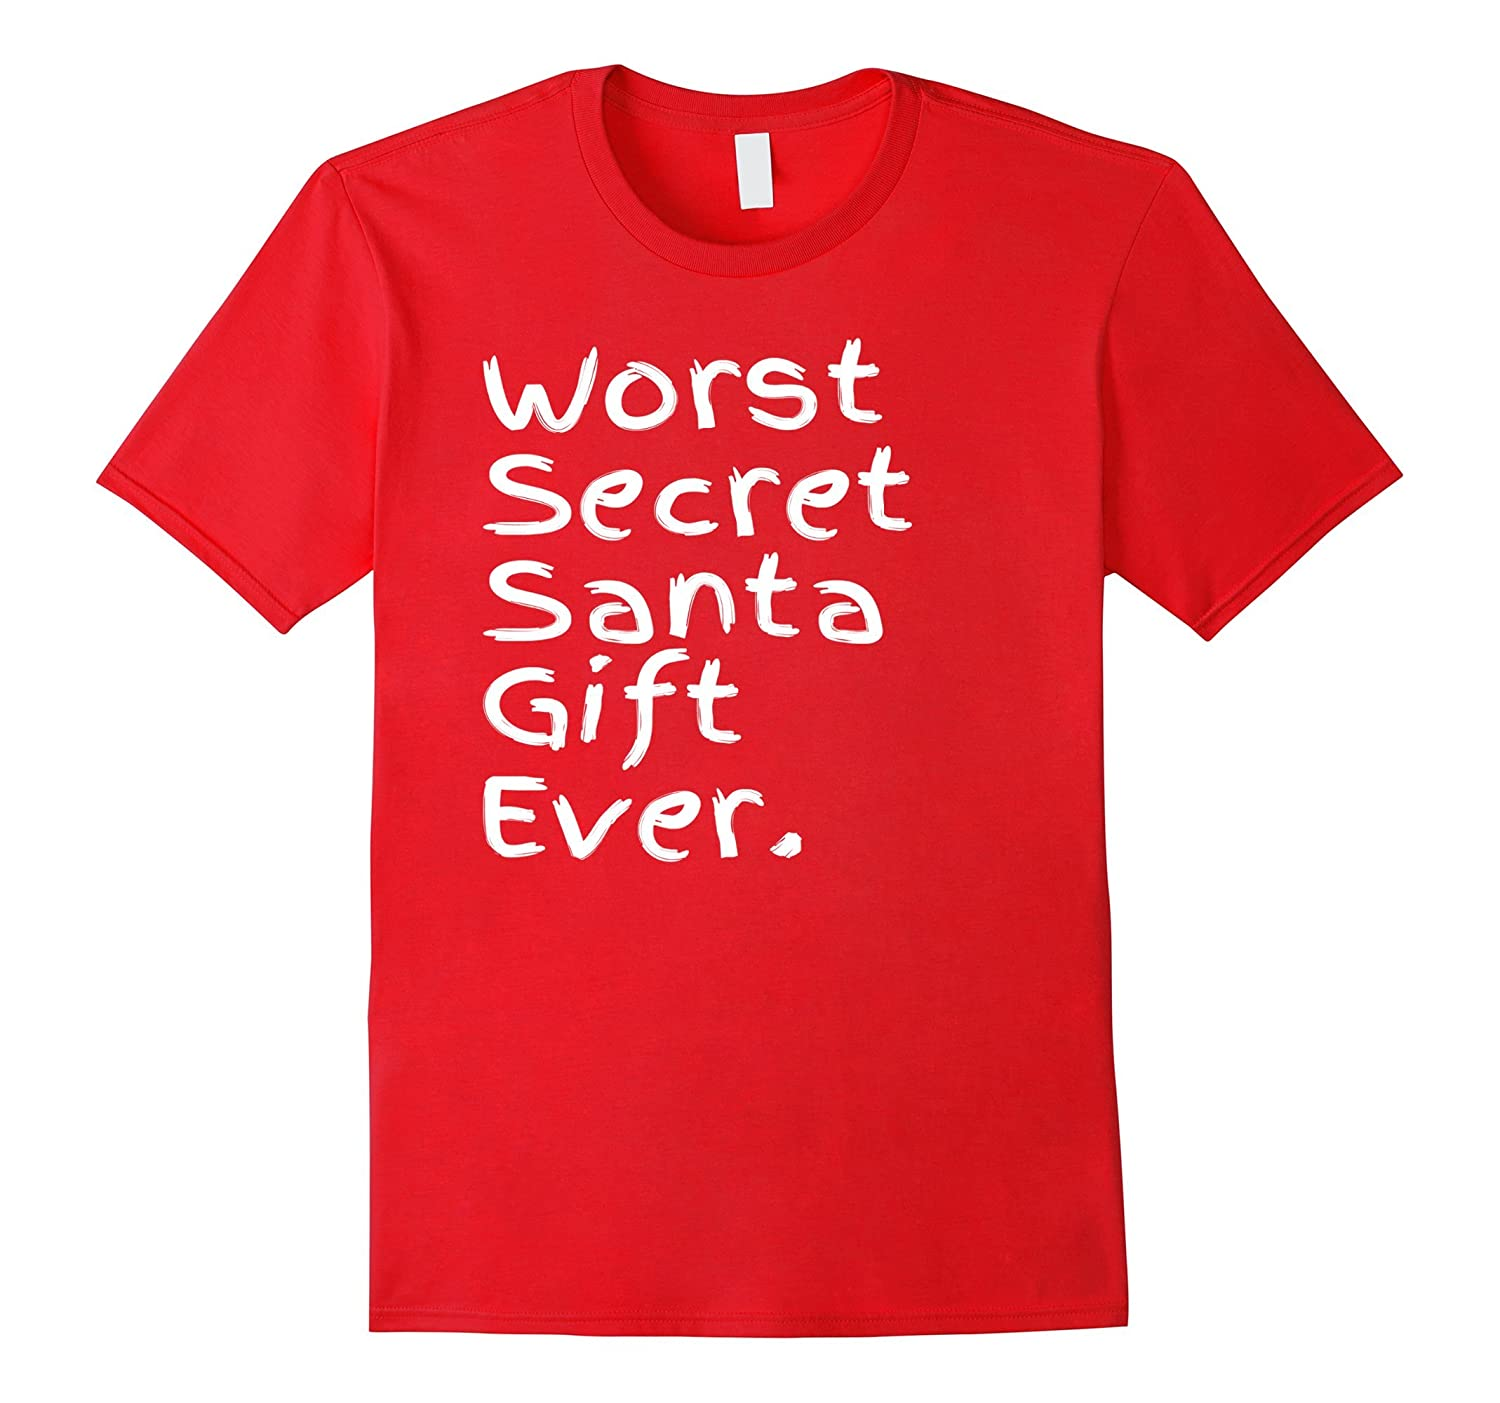 Worst Secret Santa Gift Ever Funny Christmas Present For All-FL